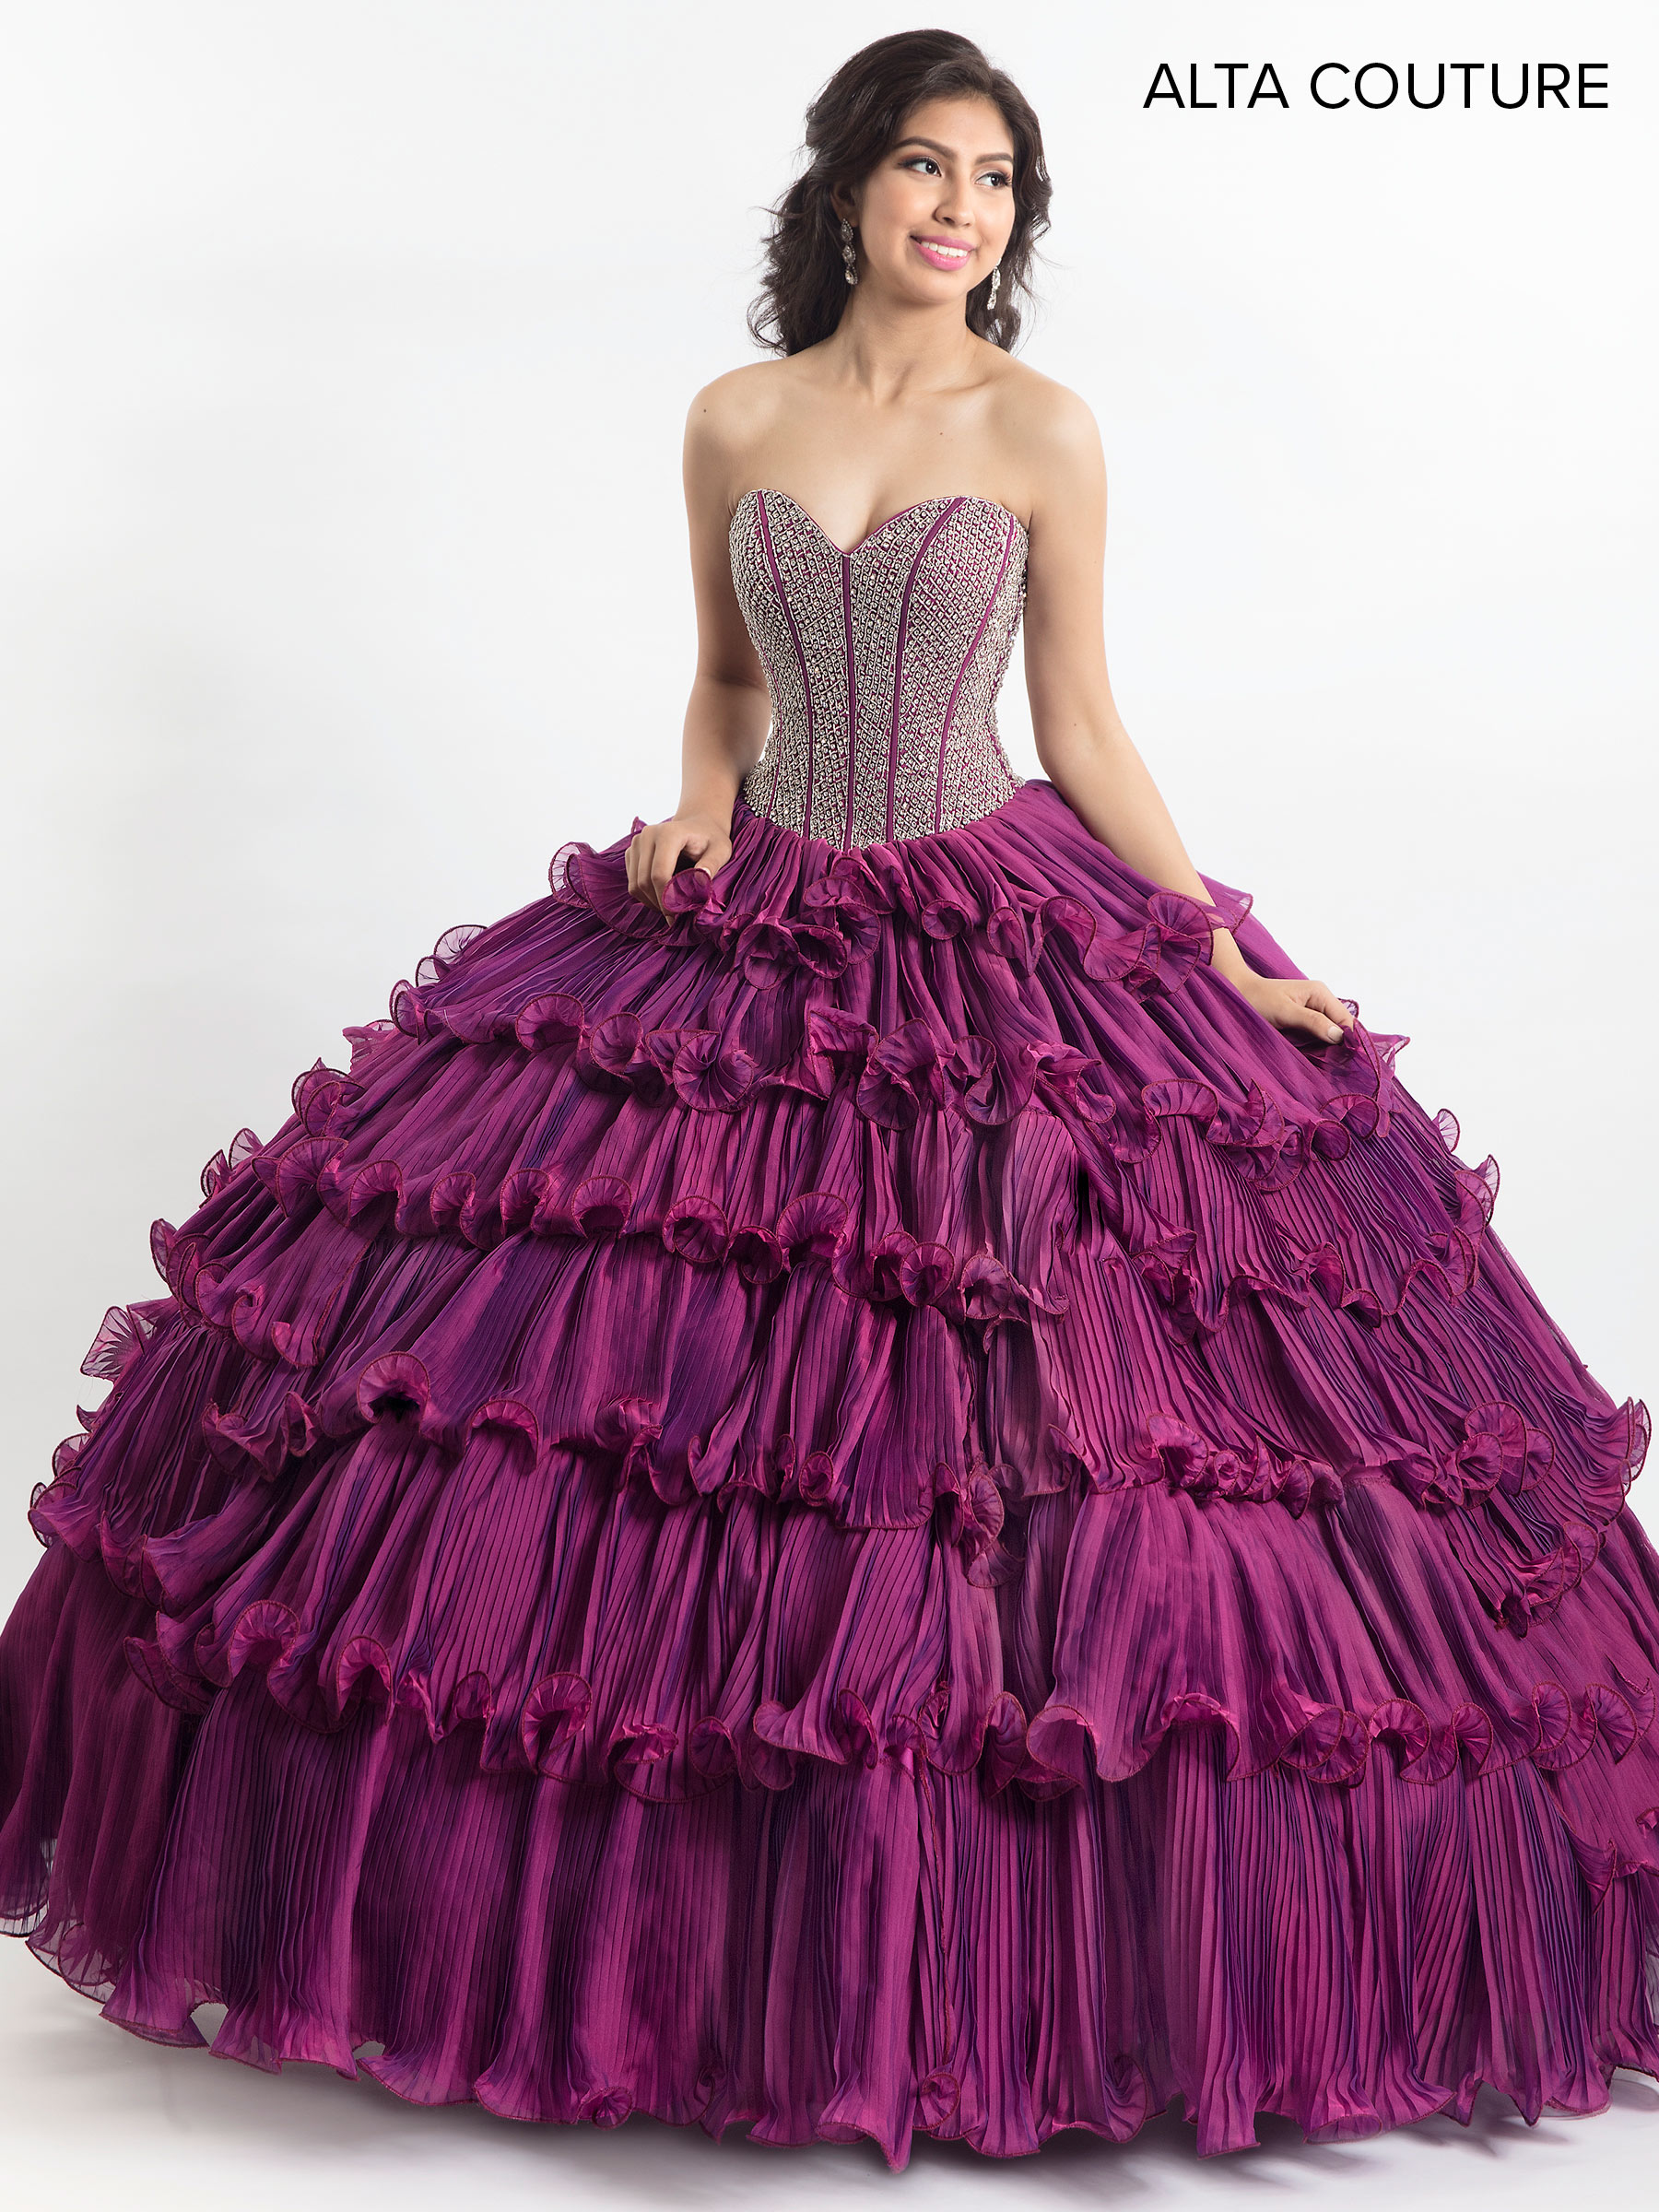 Quinceanera Couture Dresses   Style - MQ3010 in Mardi Gras or Light ...